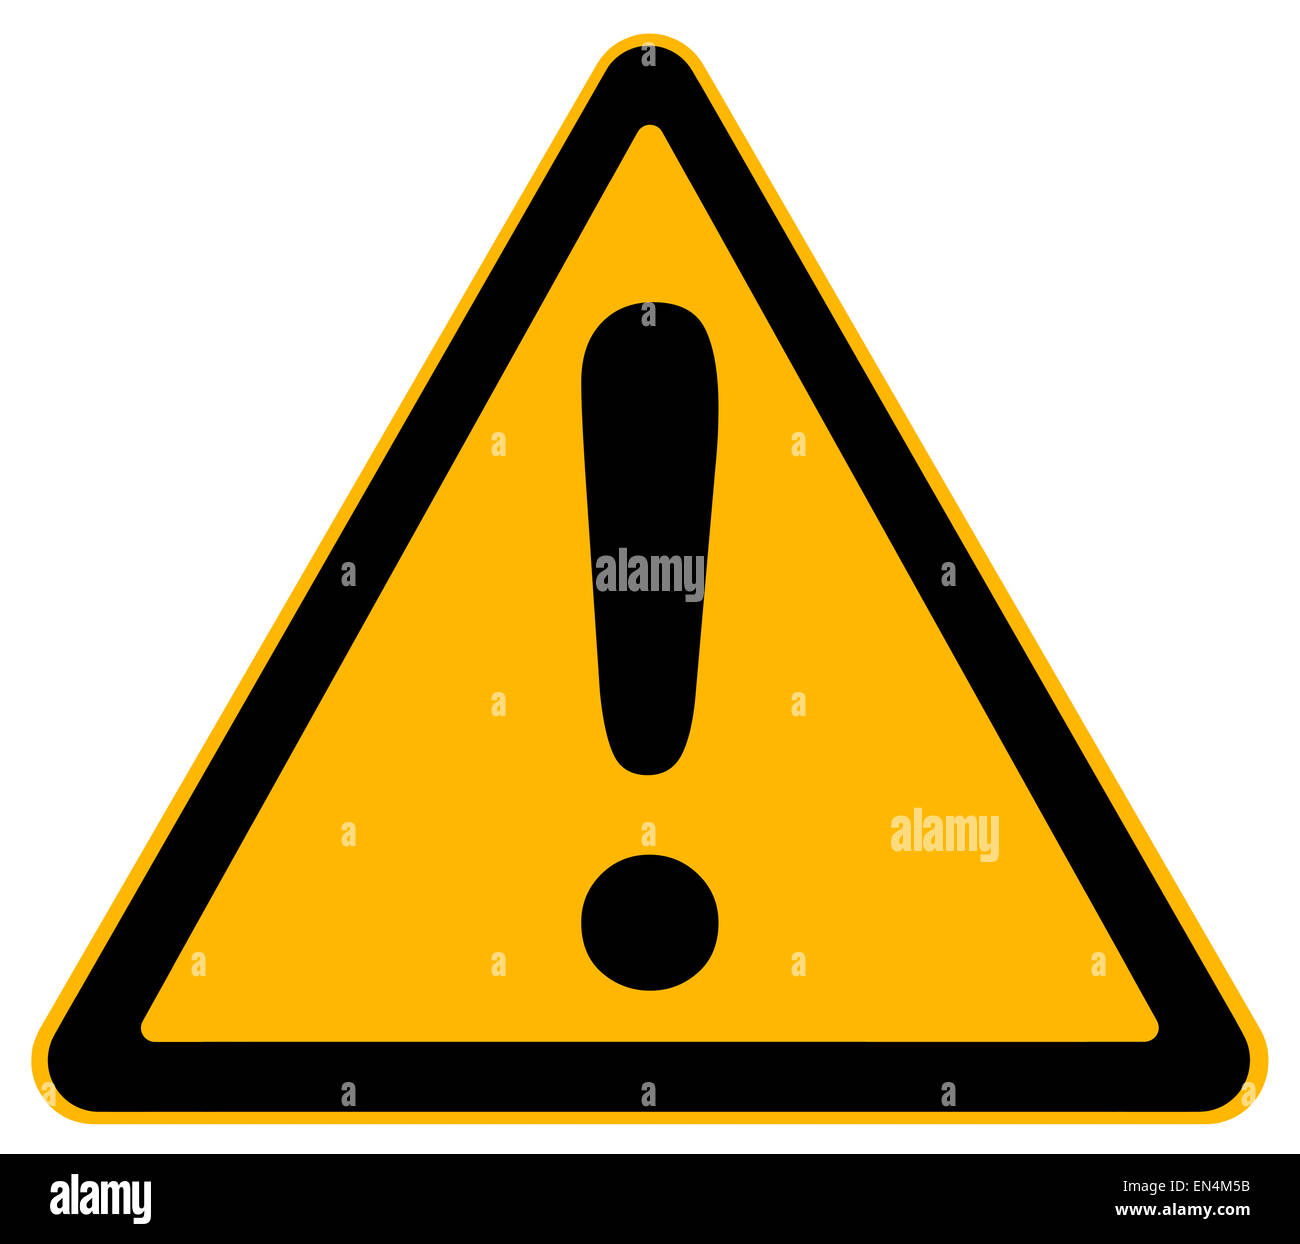 Warning Yellow Triangle Exclamation Point Stock Photos ...